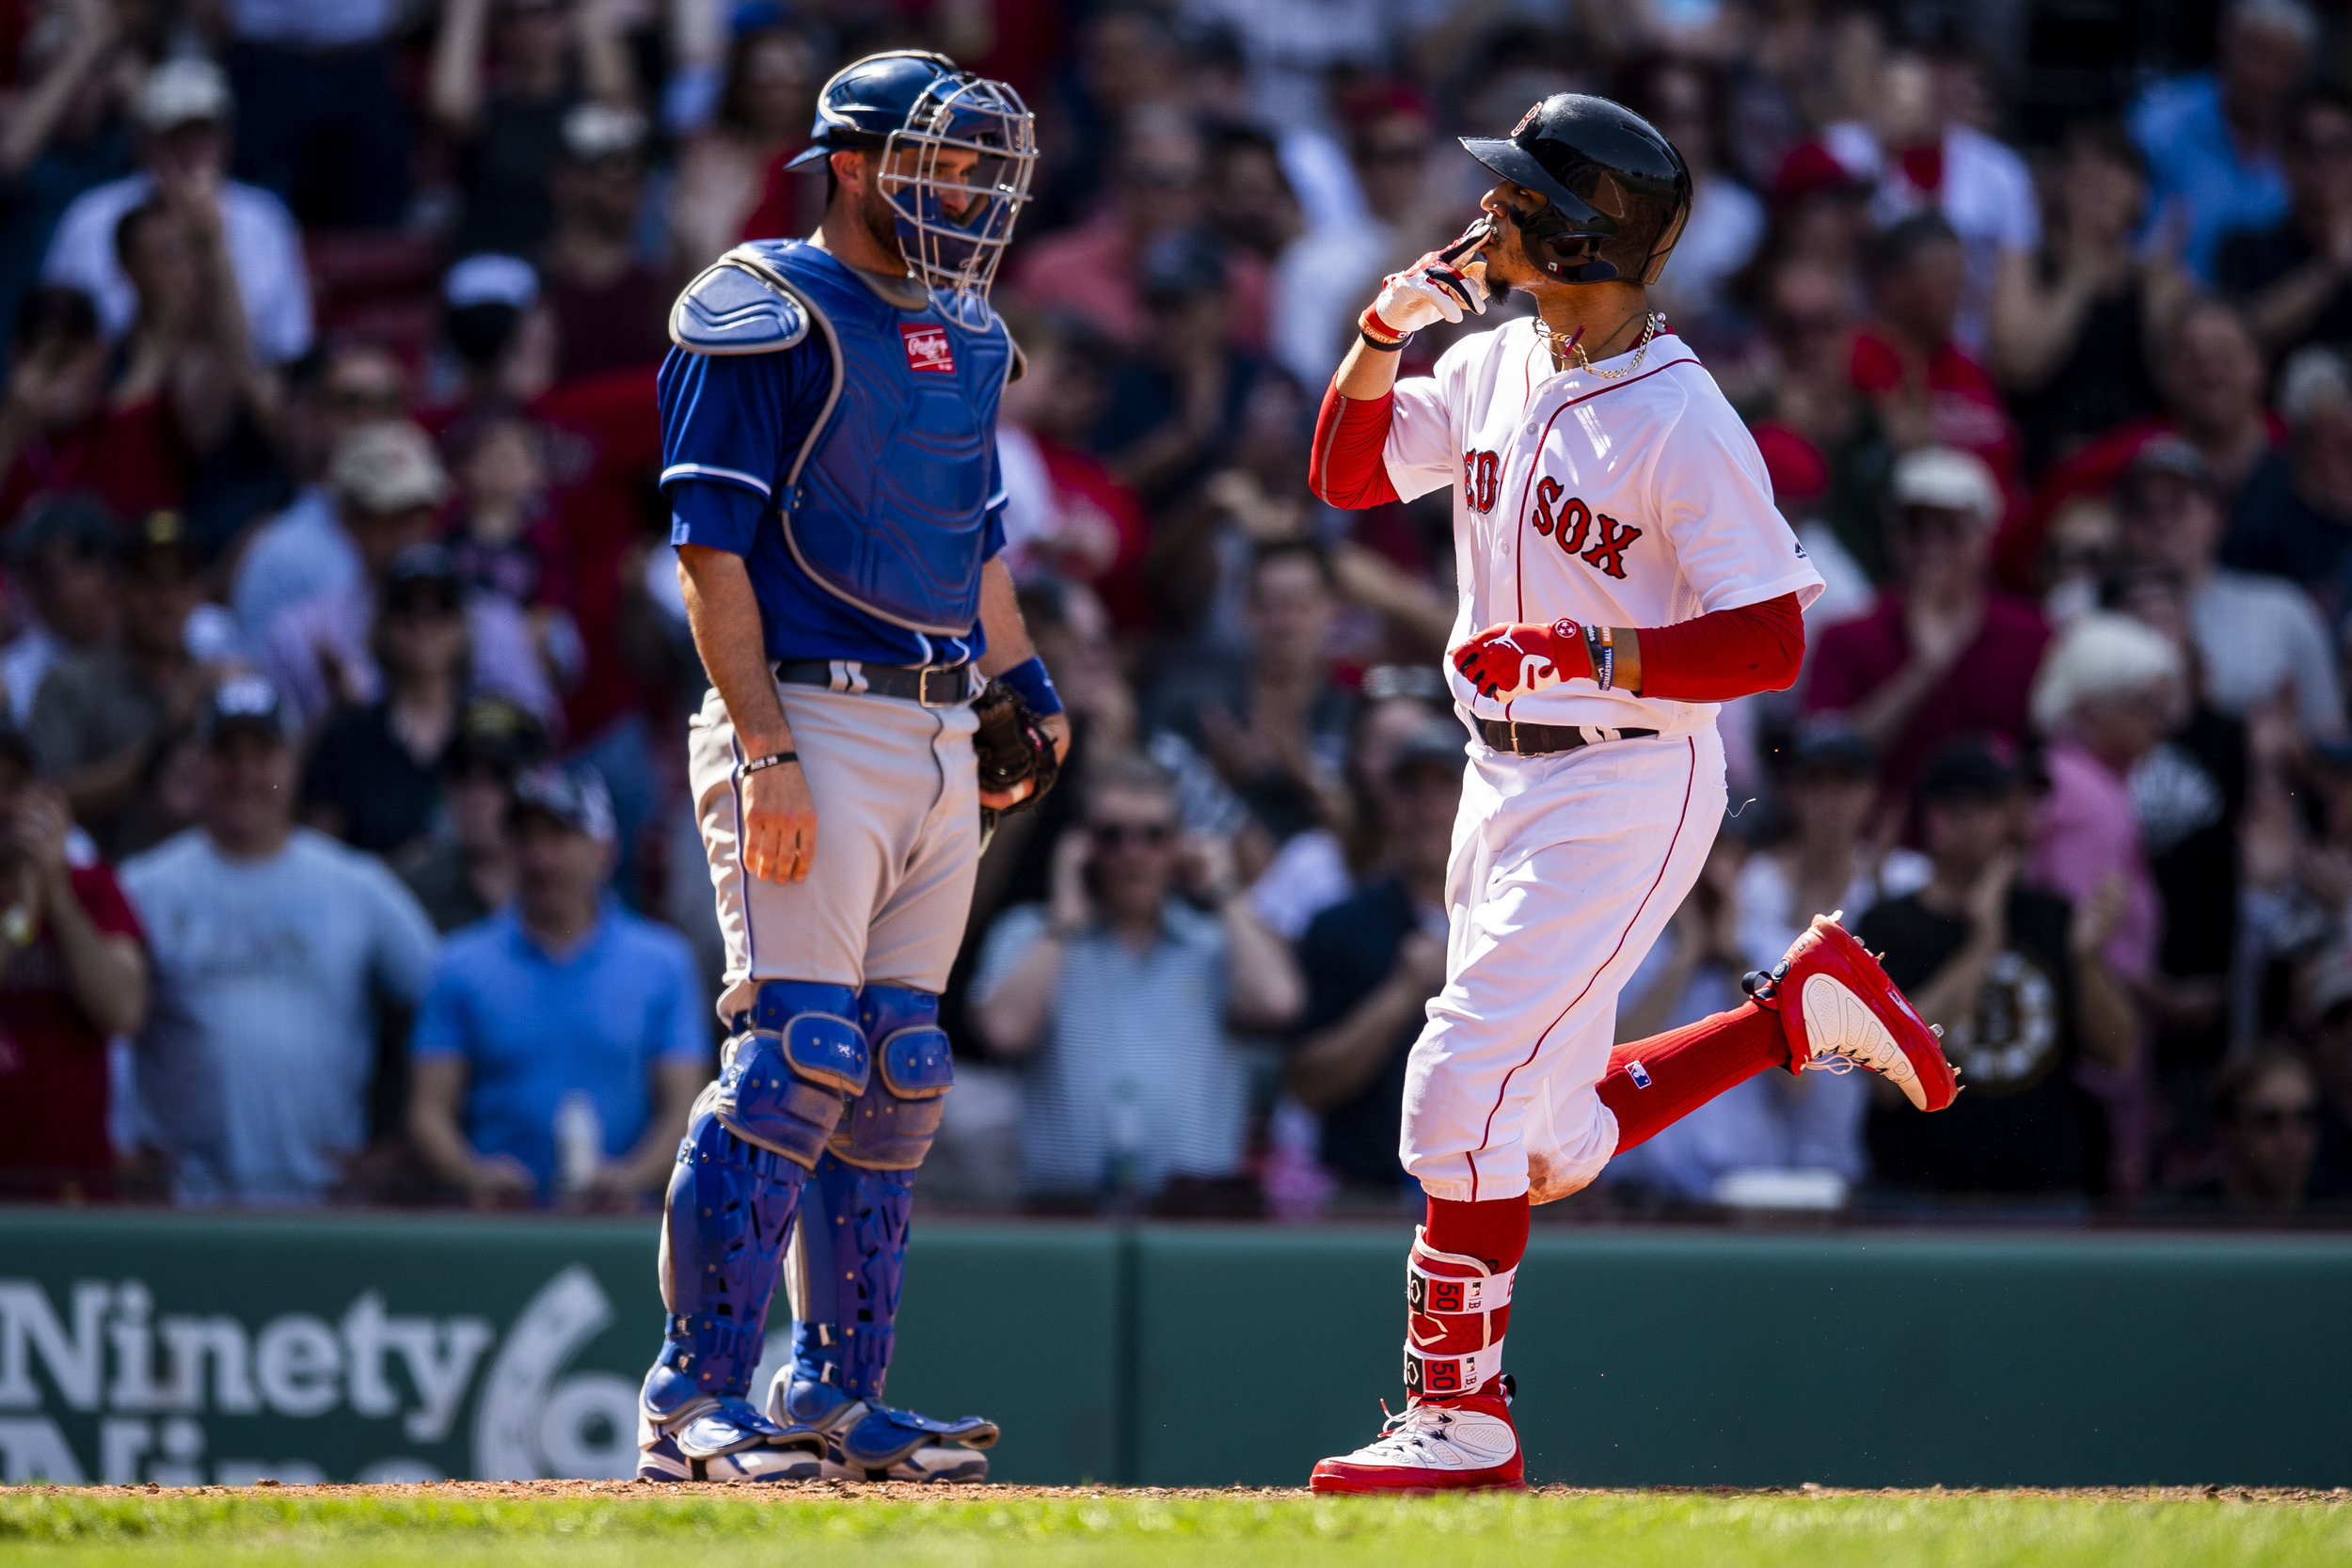 May 2, 2018, Boston, MA: Boston Red Sox outfielder Mookie Betts crosses the plate and celebrates after hitting his third home run of the game as the Boston Red Sox face the Kansas City Royals at Fenway Park in Boston, Massachusetts Wednesday, May 2, 2018. (Photo by Matthew Thomas/Boston Red Sox)